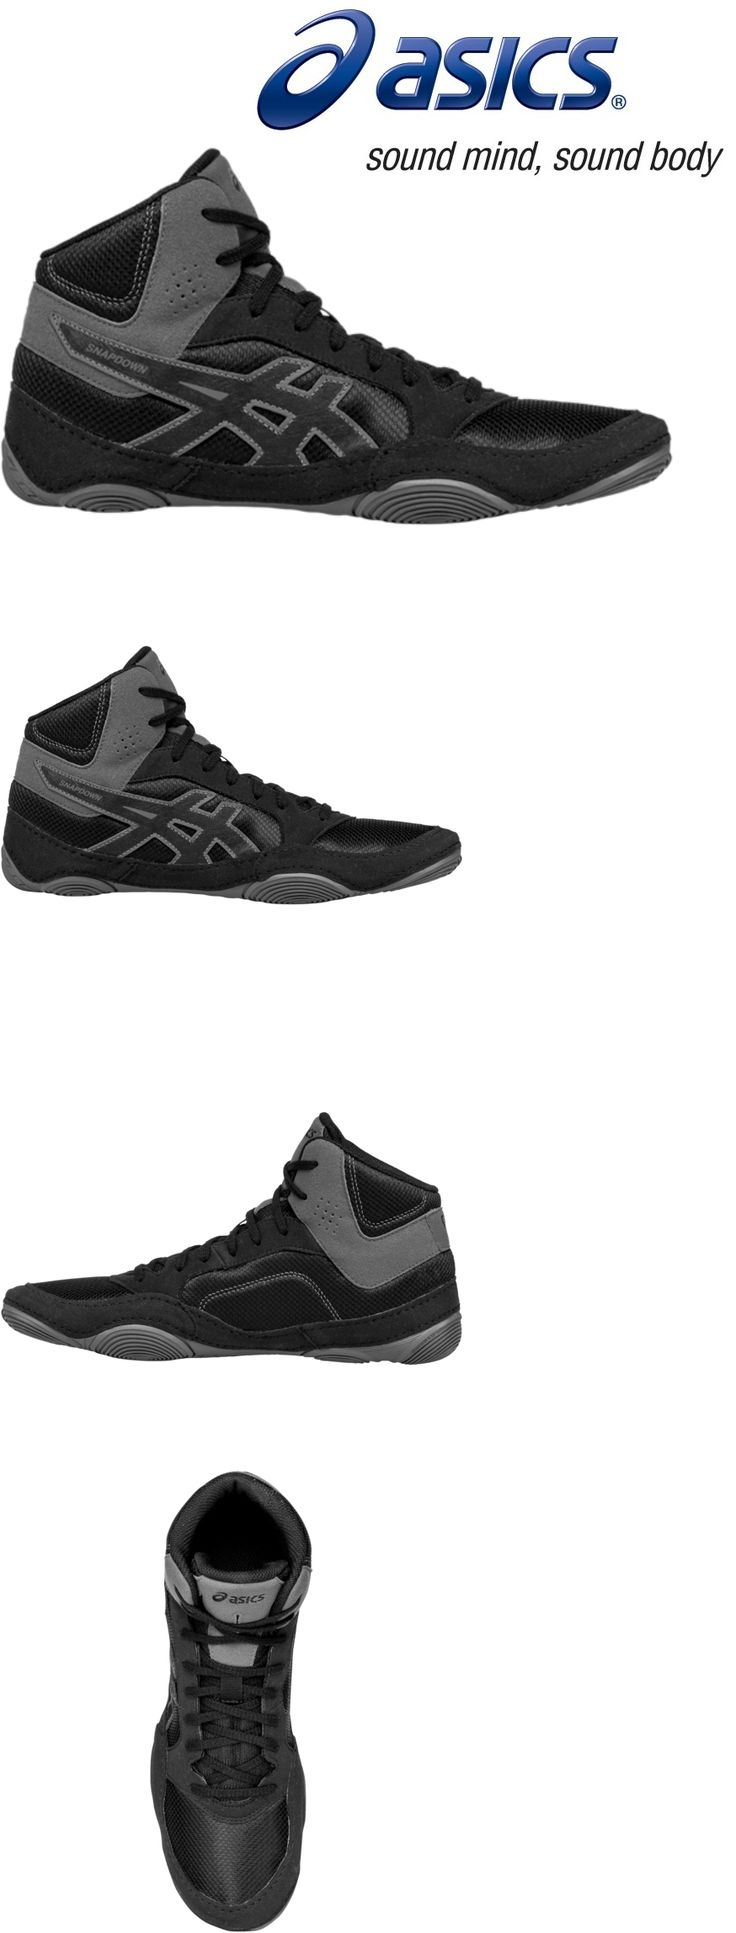 Accessories 36306: *New* Asics Snapdown 2 Wrestling Shoes (Boots) Ringerschuhe Chaussures De Lutte -> BUY IT NOW ONLY: $69.99 on eBay!